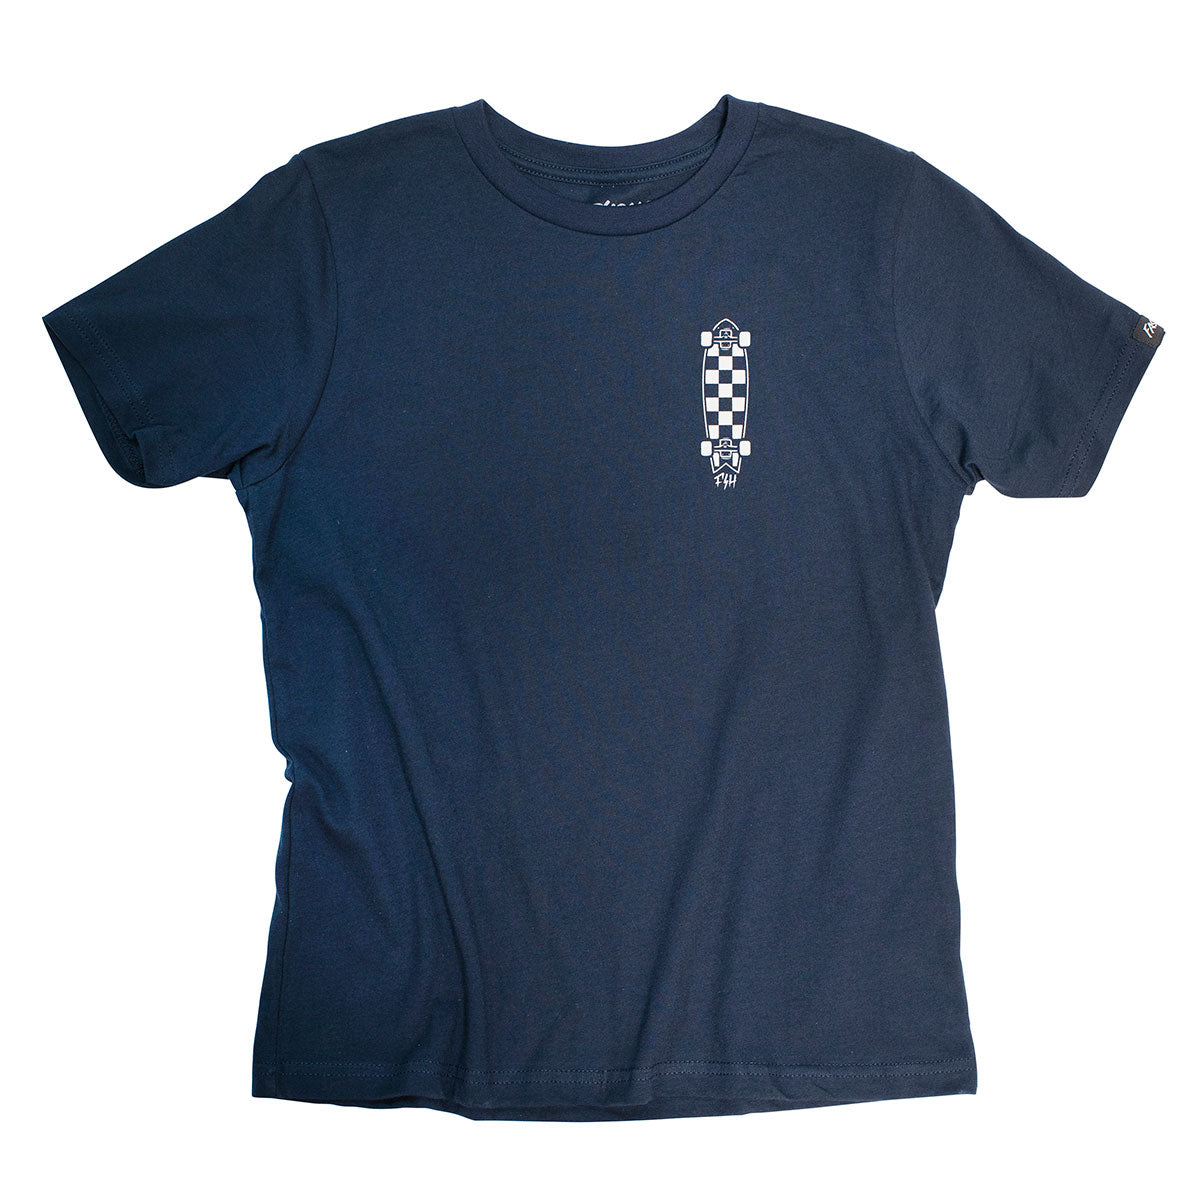 Indy Youth Tee - Navy